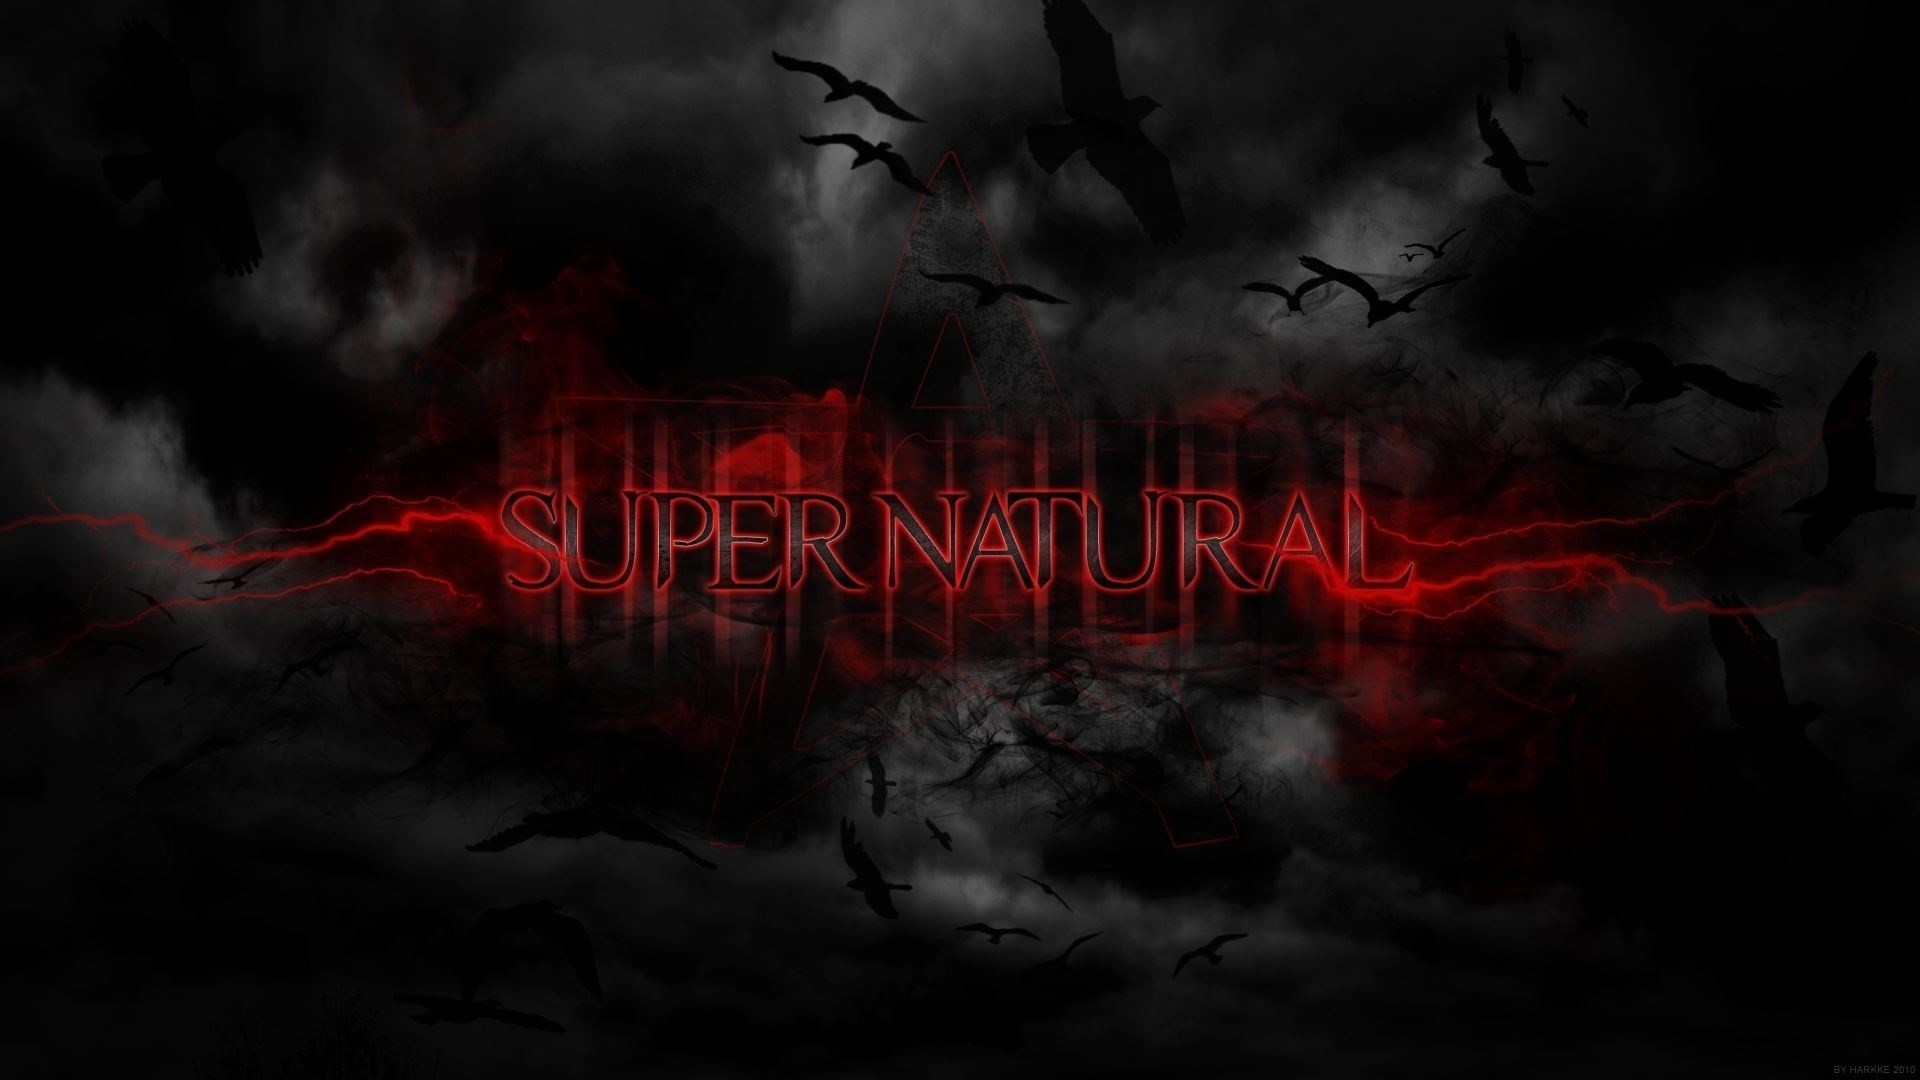 110 Supernatural HD Wallpapers | Backgrounds - Wallpaper Abyss .